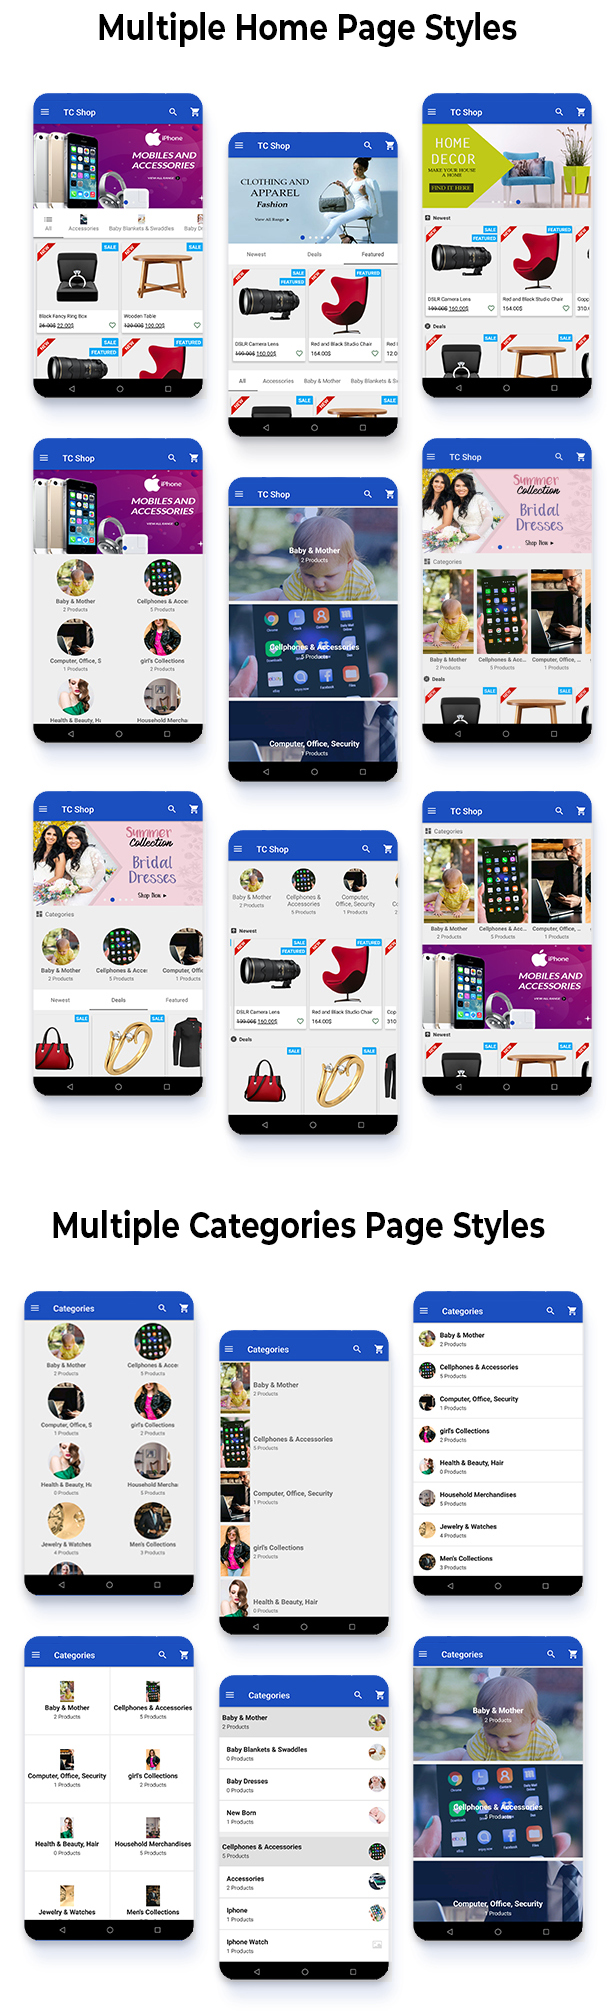 Android Woocommerce - Universal Native Android Ecommerce / Store Full Mobile Application - 6